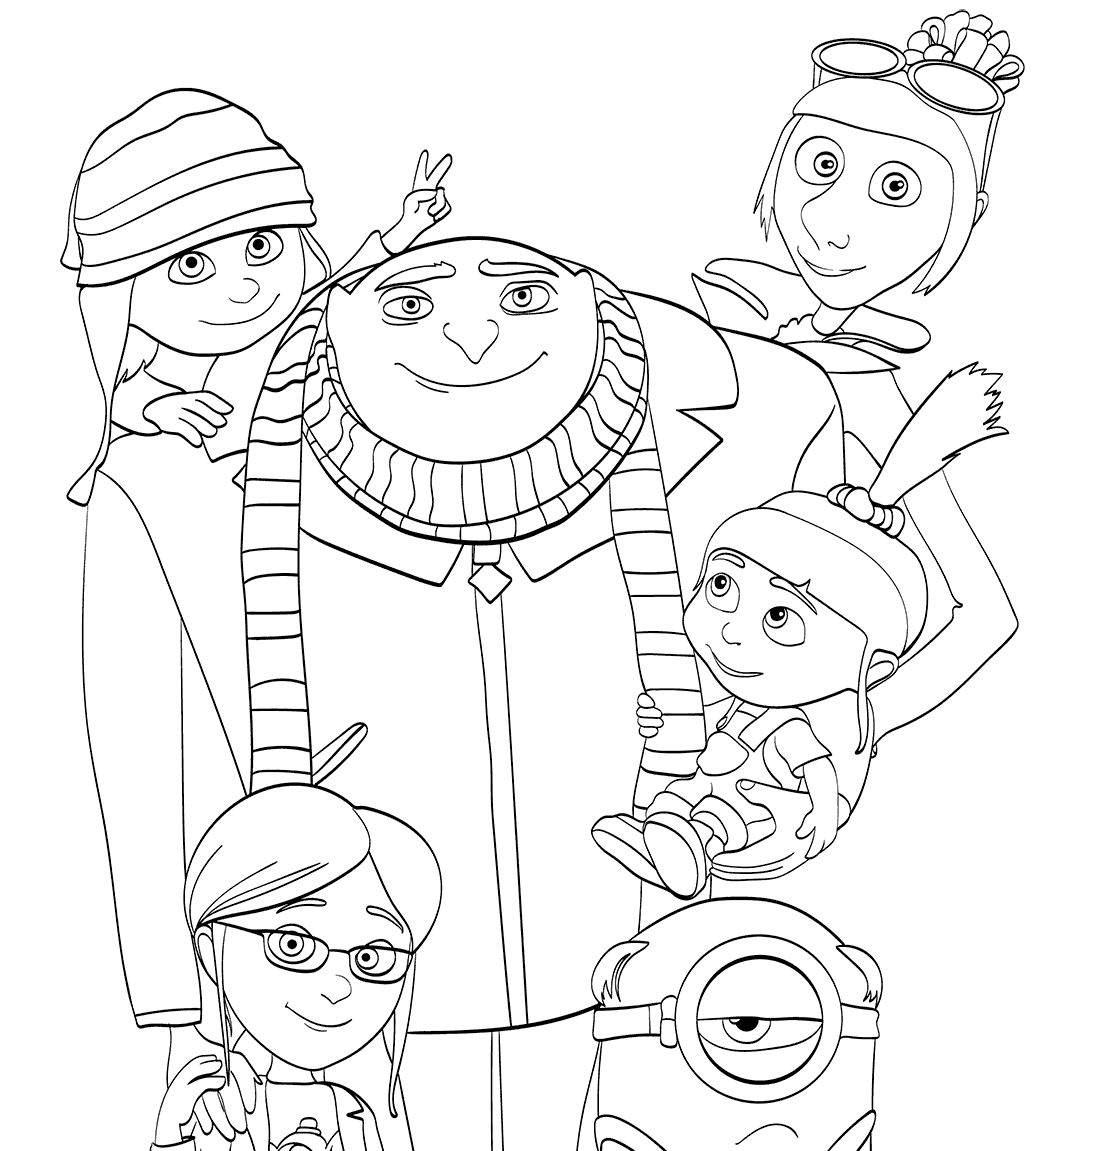 me coloring pages mia and me coloring pages coloring pages to download and coloring pages me 1 1